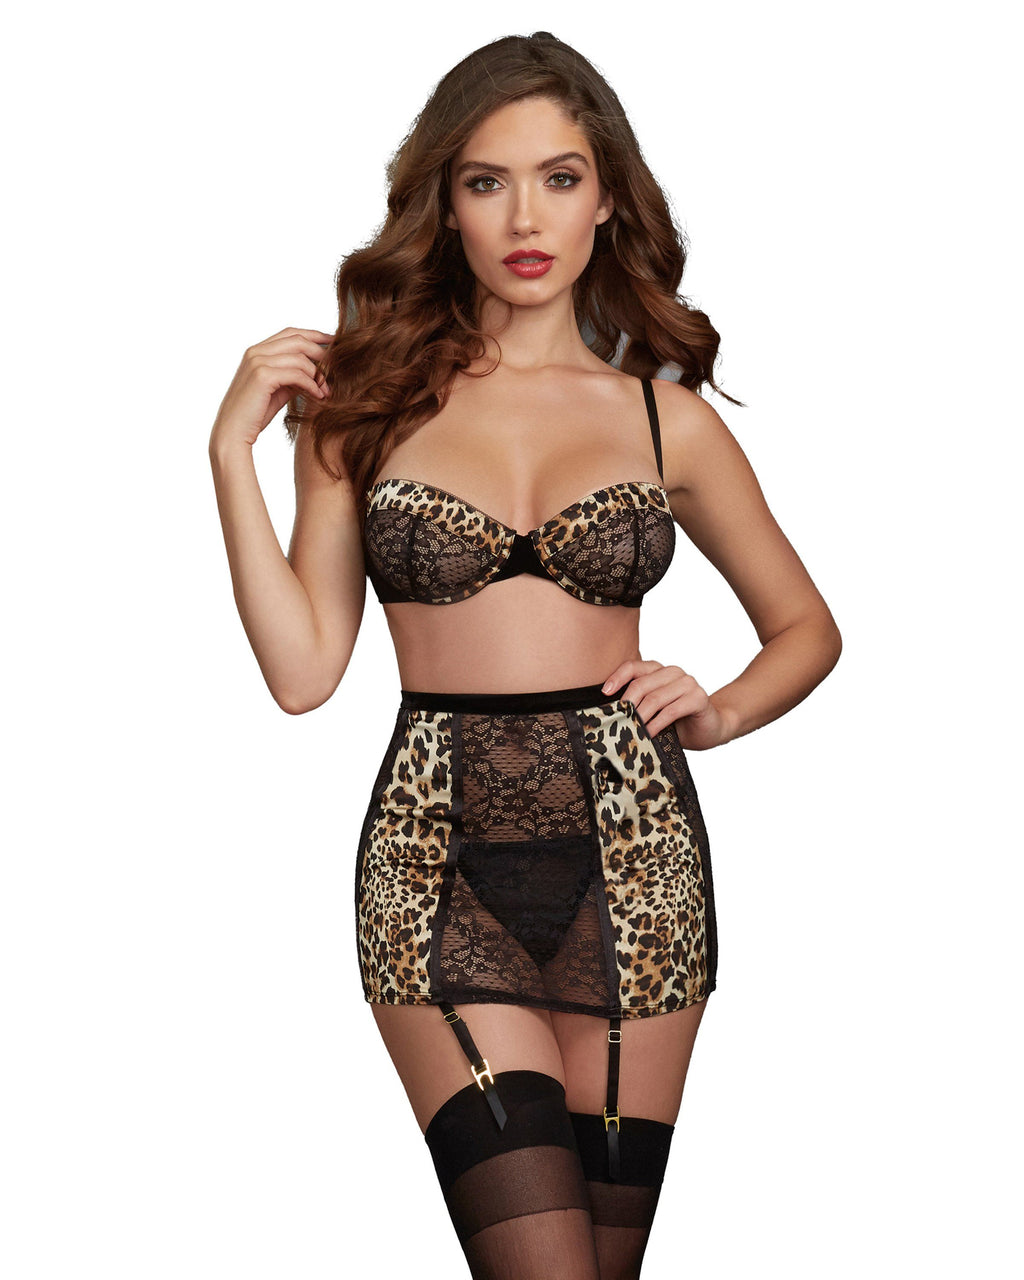 3-Piece Garter Set with Cheetah Print Satin Charmeuse Details Bra Set Dreamgirl International